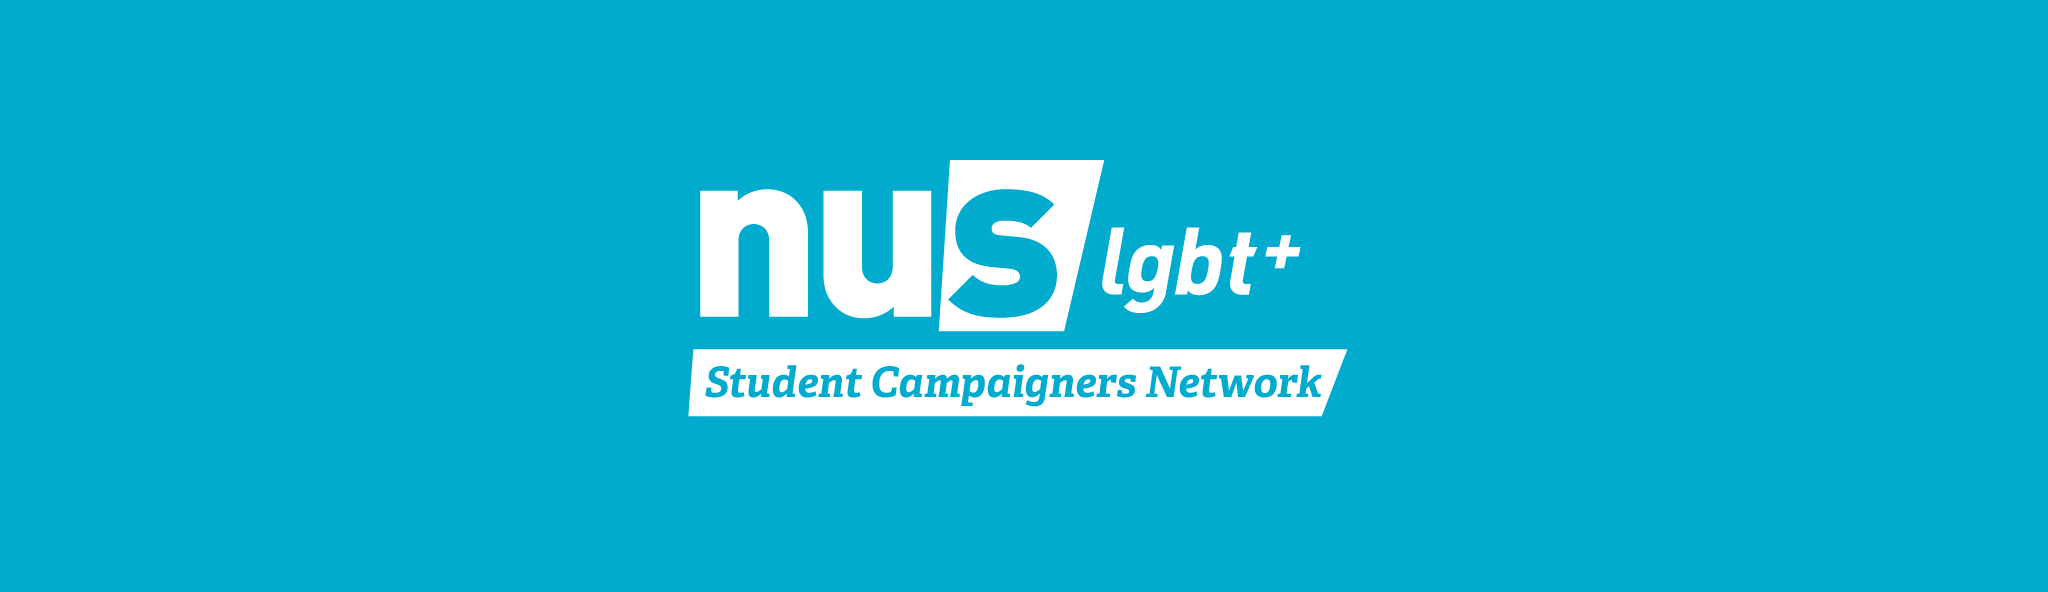 NUS LGBT+ student campaigners network